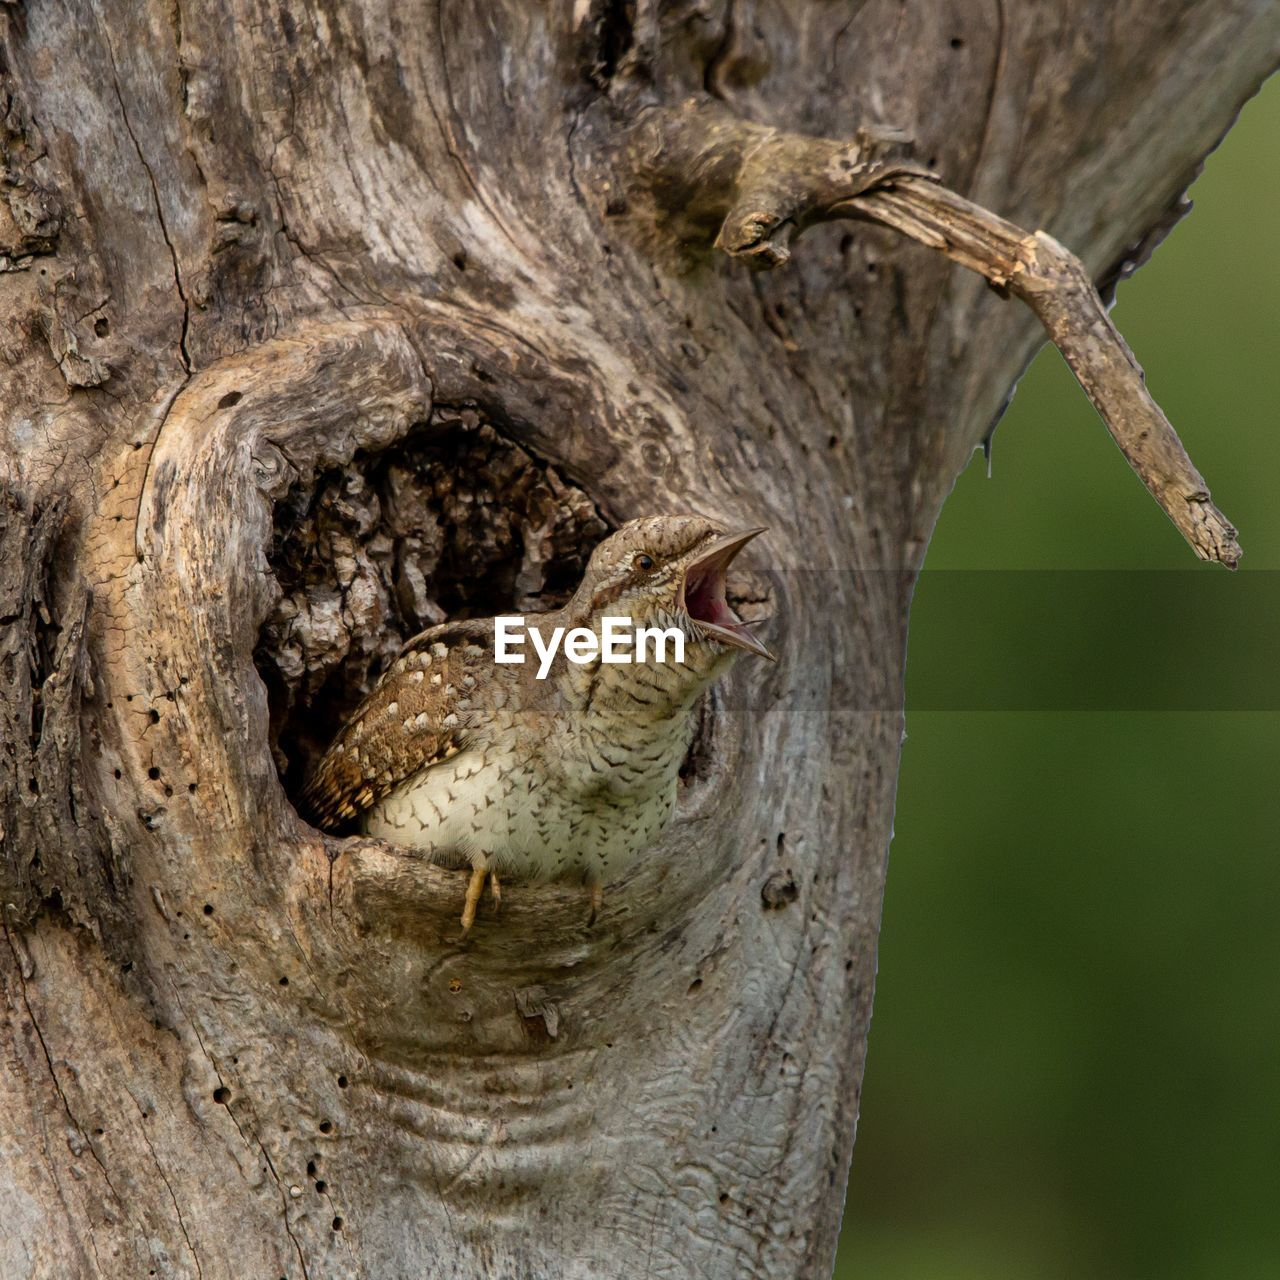 tree, animal wildlife, animal themes, animal, tree trunk, animals in the wild, trunk, bird, vertebrate, plant, one animal, focus on foreground, no people, nature, close-up, day, branch, woodpecker, outdoors, plant bark, mouth open